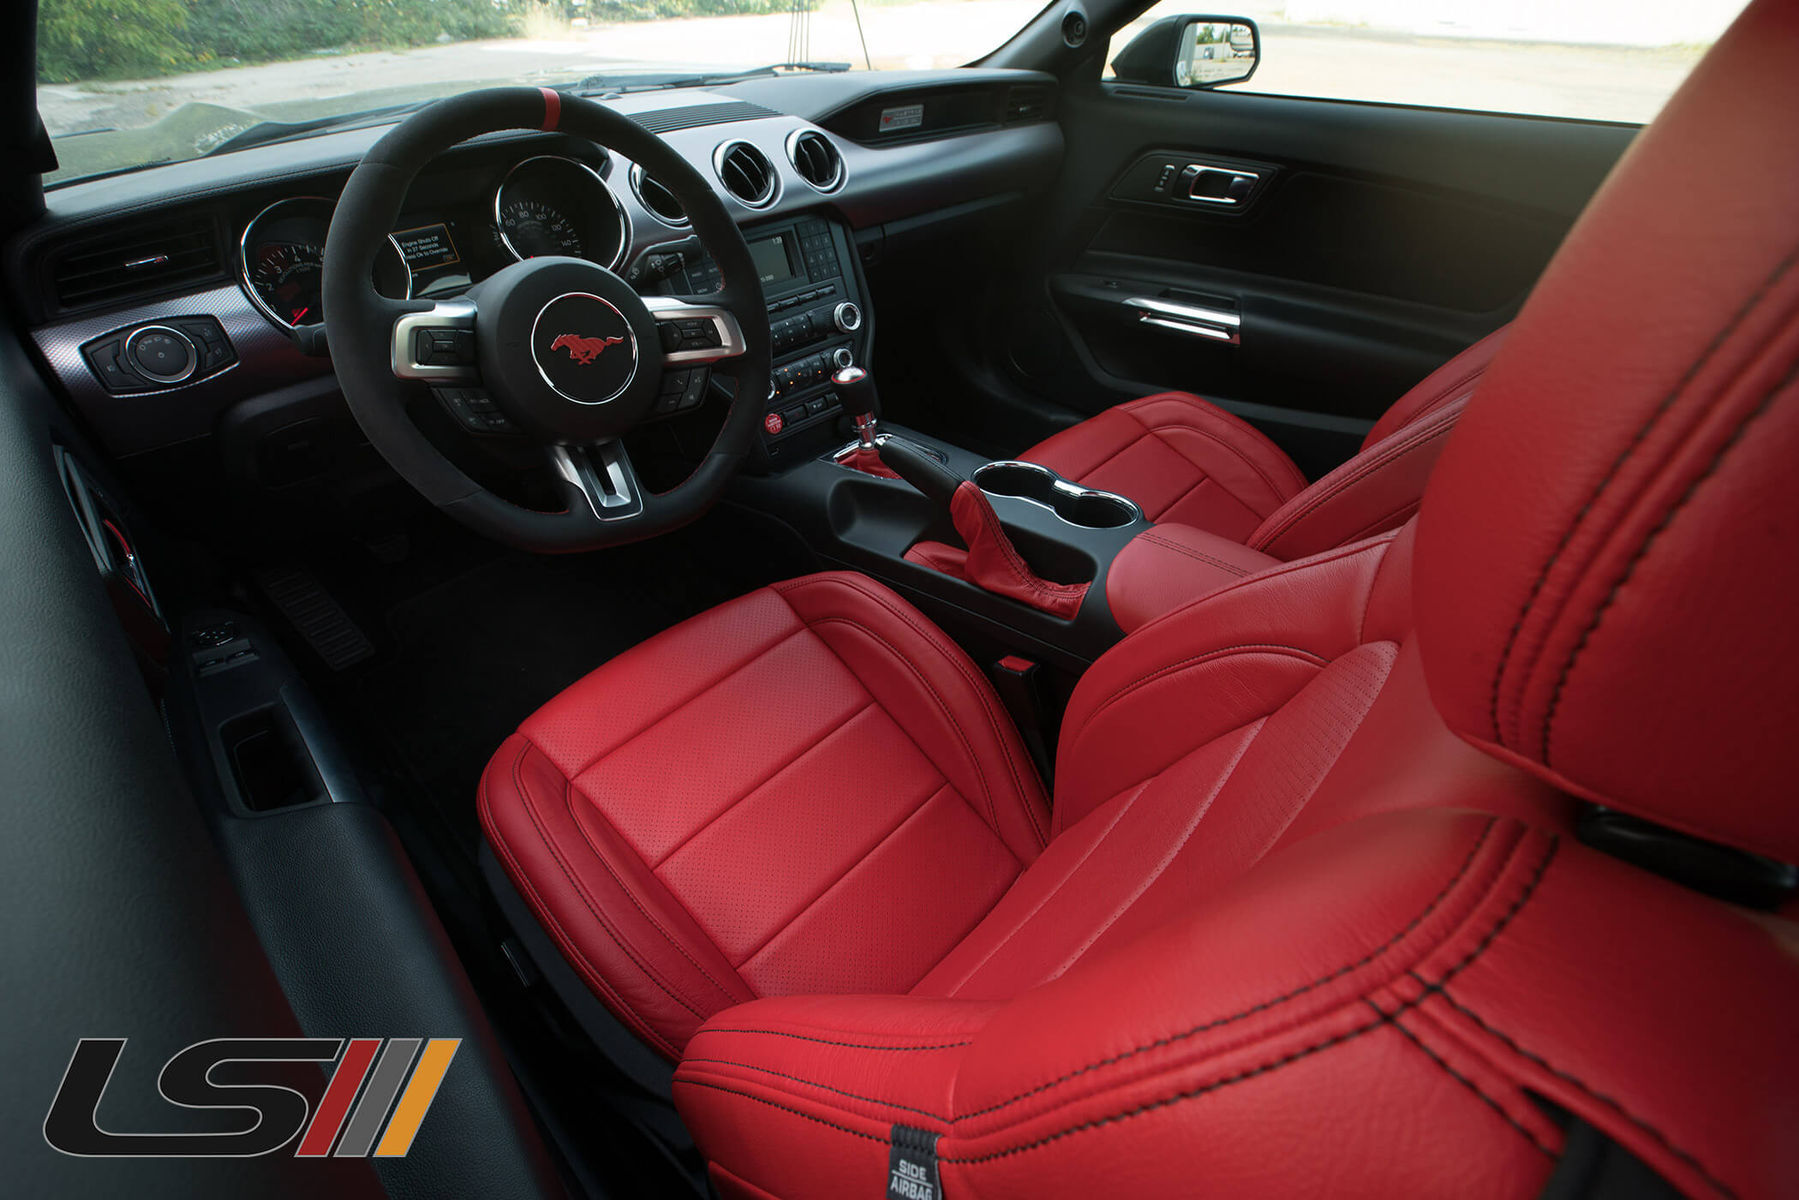 Stupendous 2016 Mustang Gt Leather Interior By Leatherseats Com Squirreltailoven Fun Painted Chair Ideas Images Squirreltailovenorg